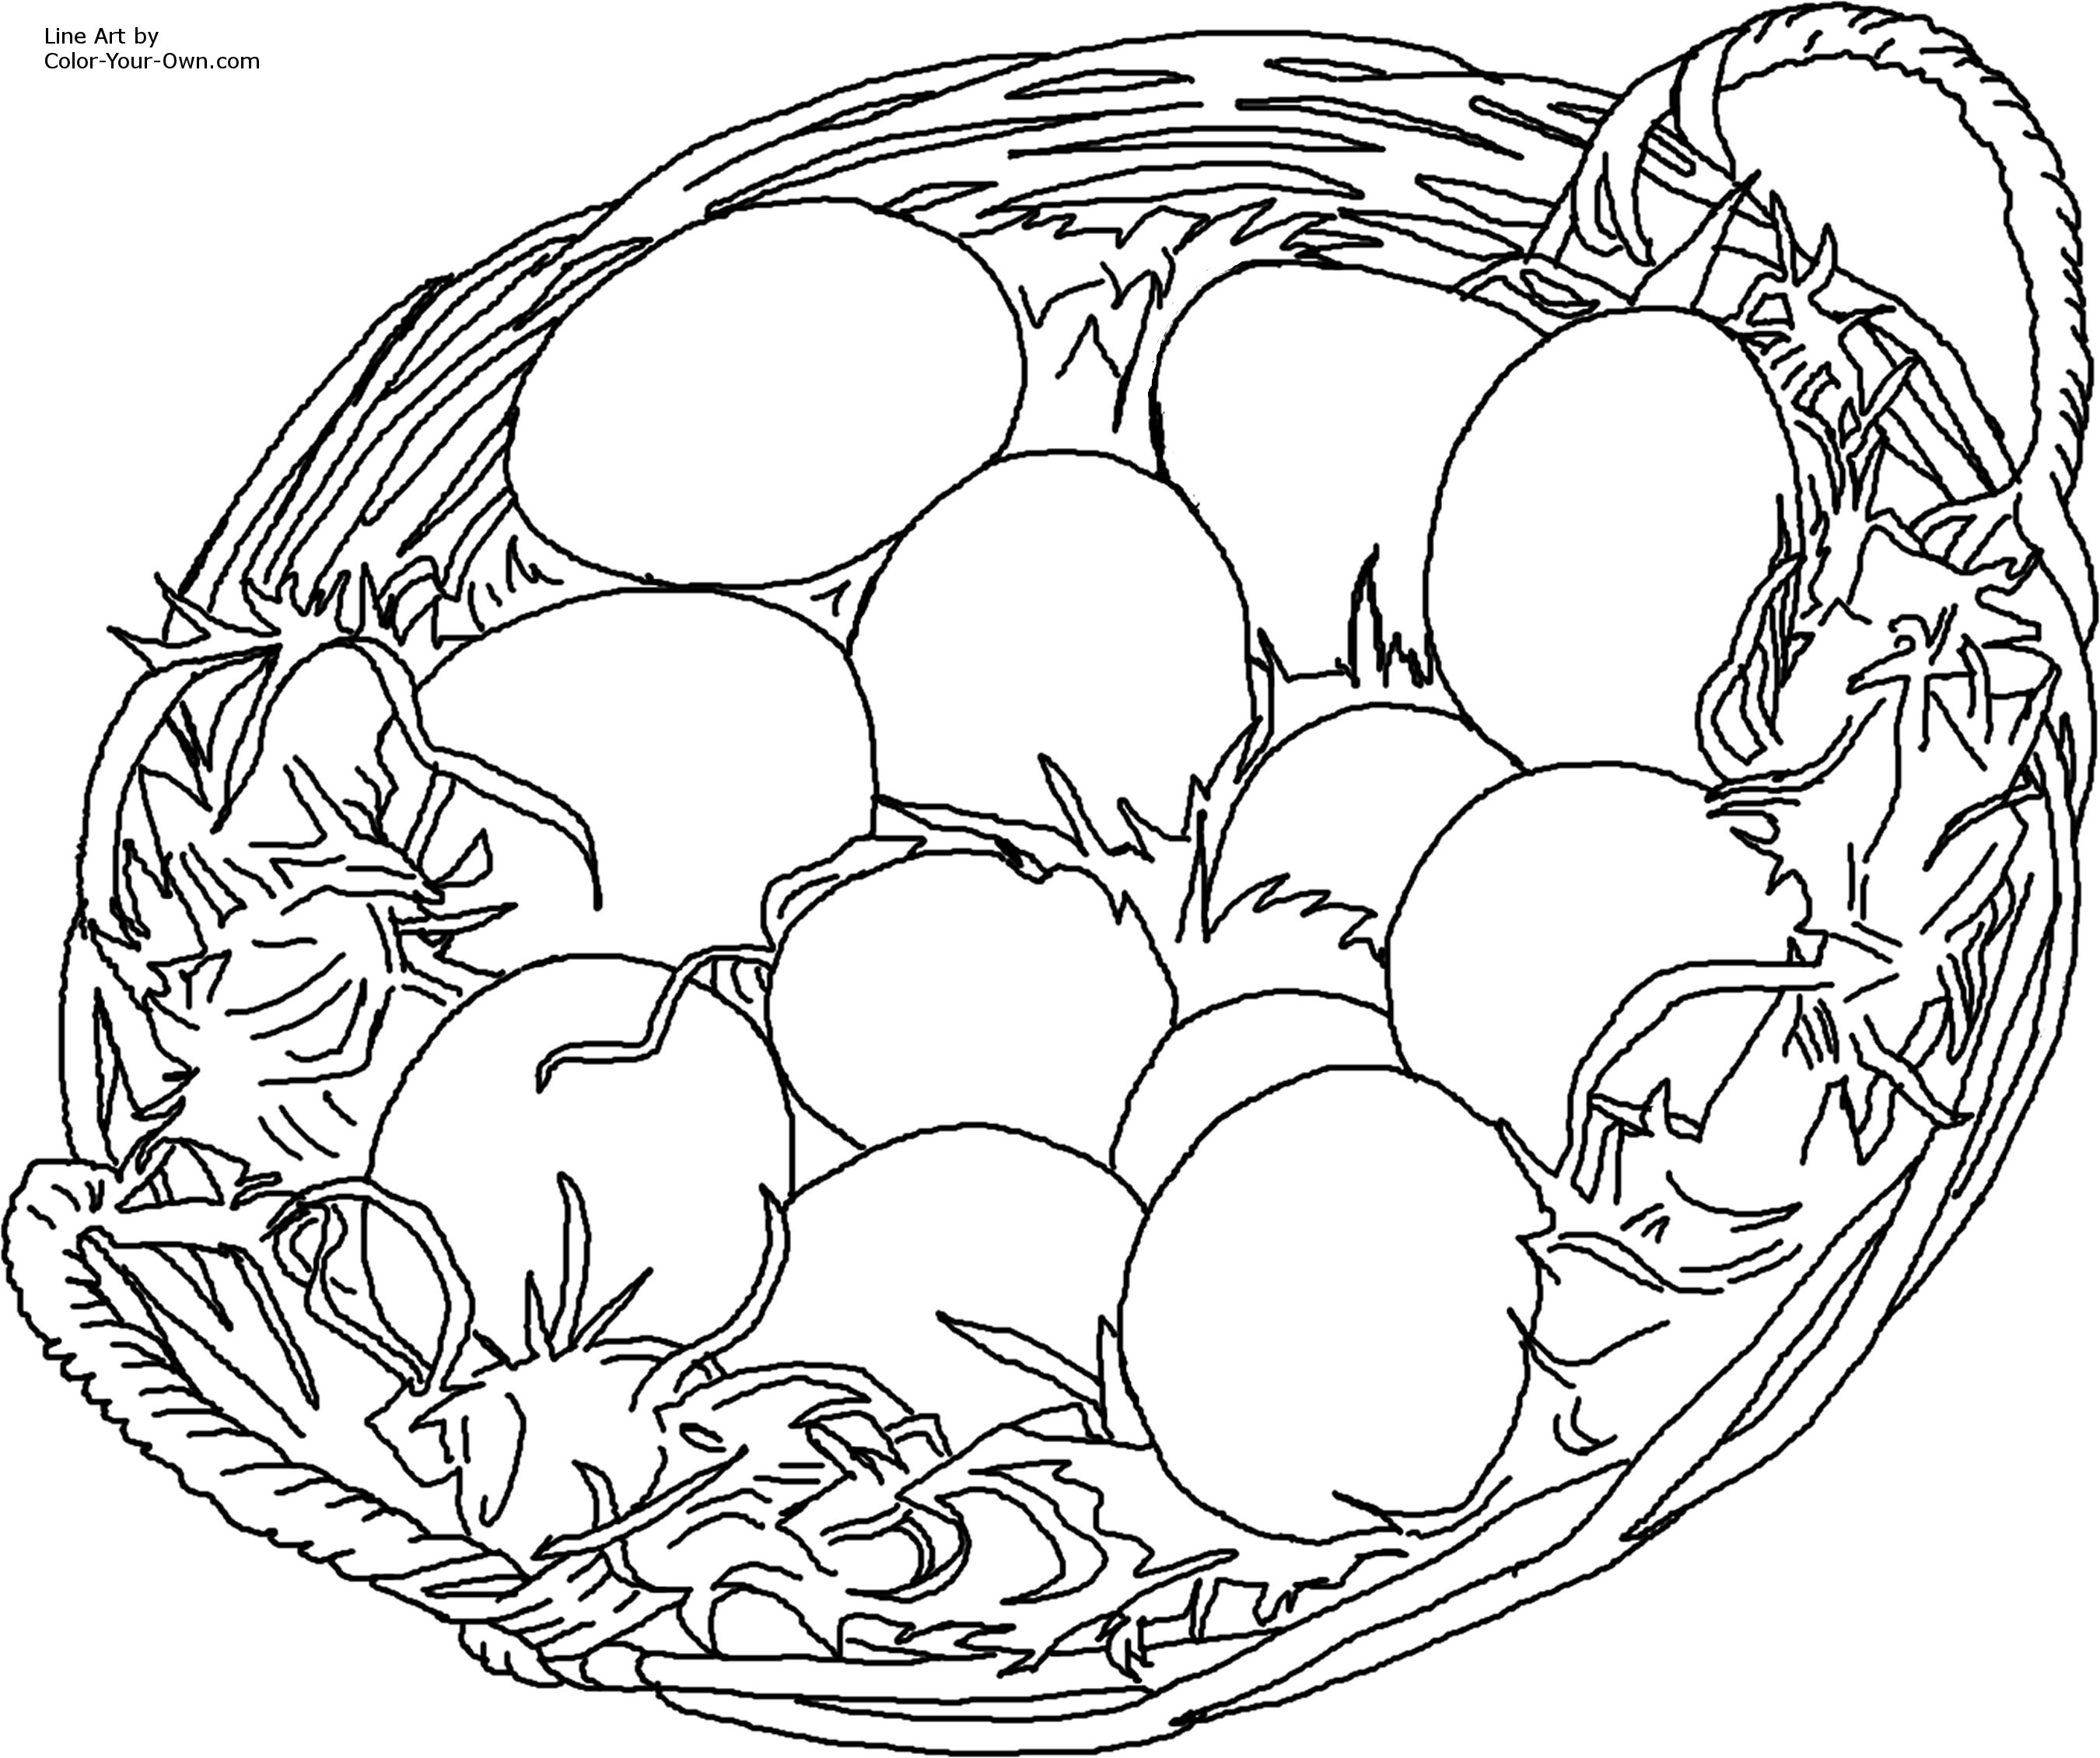 Chicken Egg Drawing at GetDrawings.com | Free for personal use ...